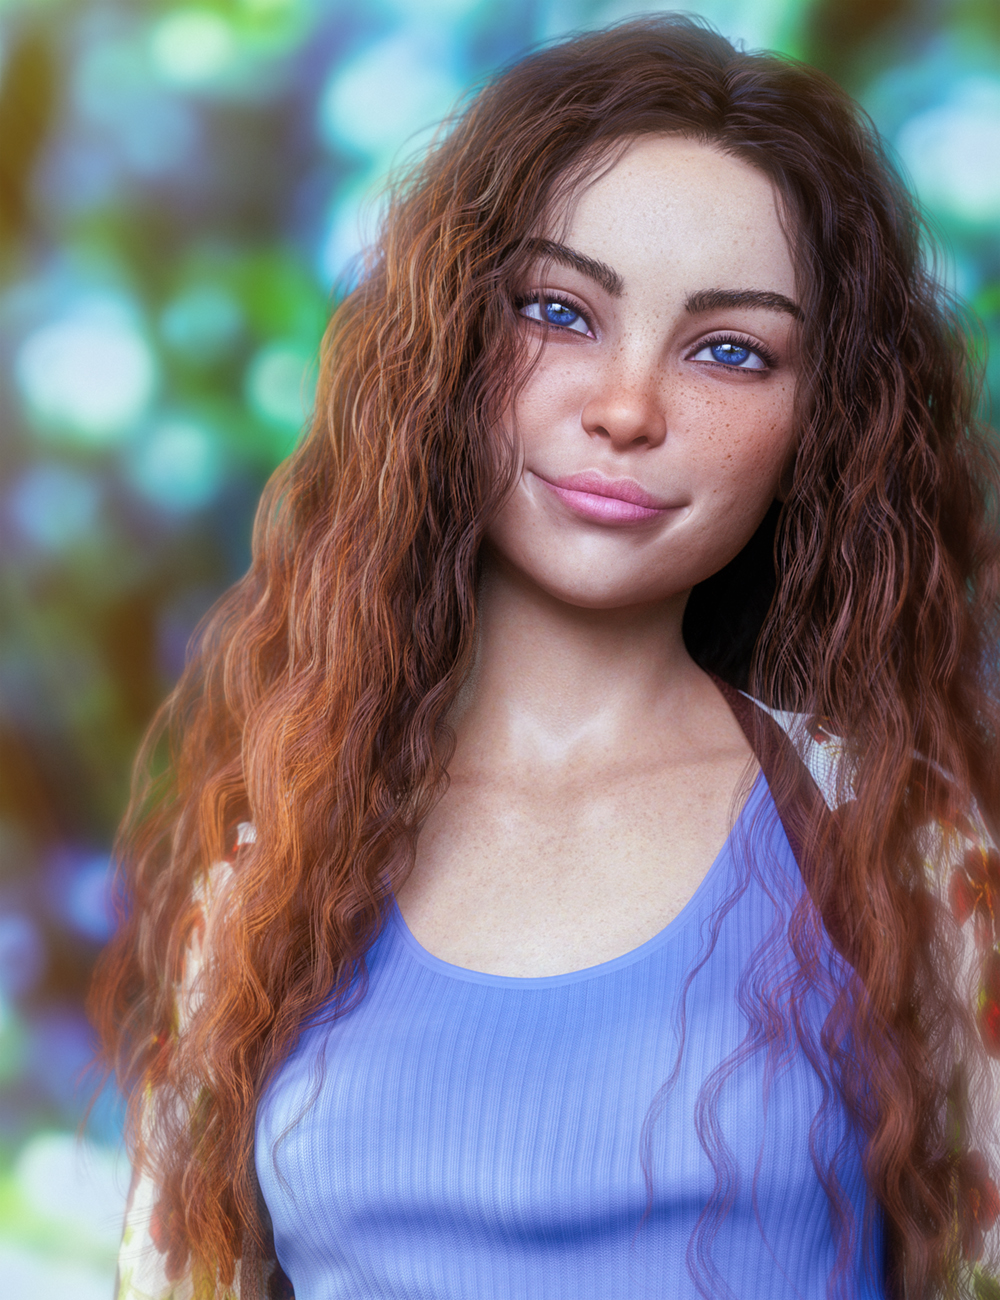 Bitsy For Genesis 8 Female by: Colm Jackson, 3D Models by Daz 3D